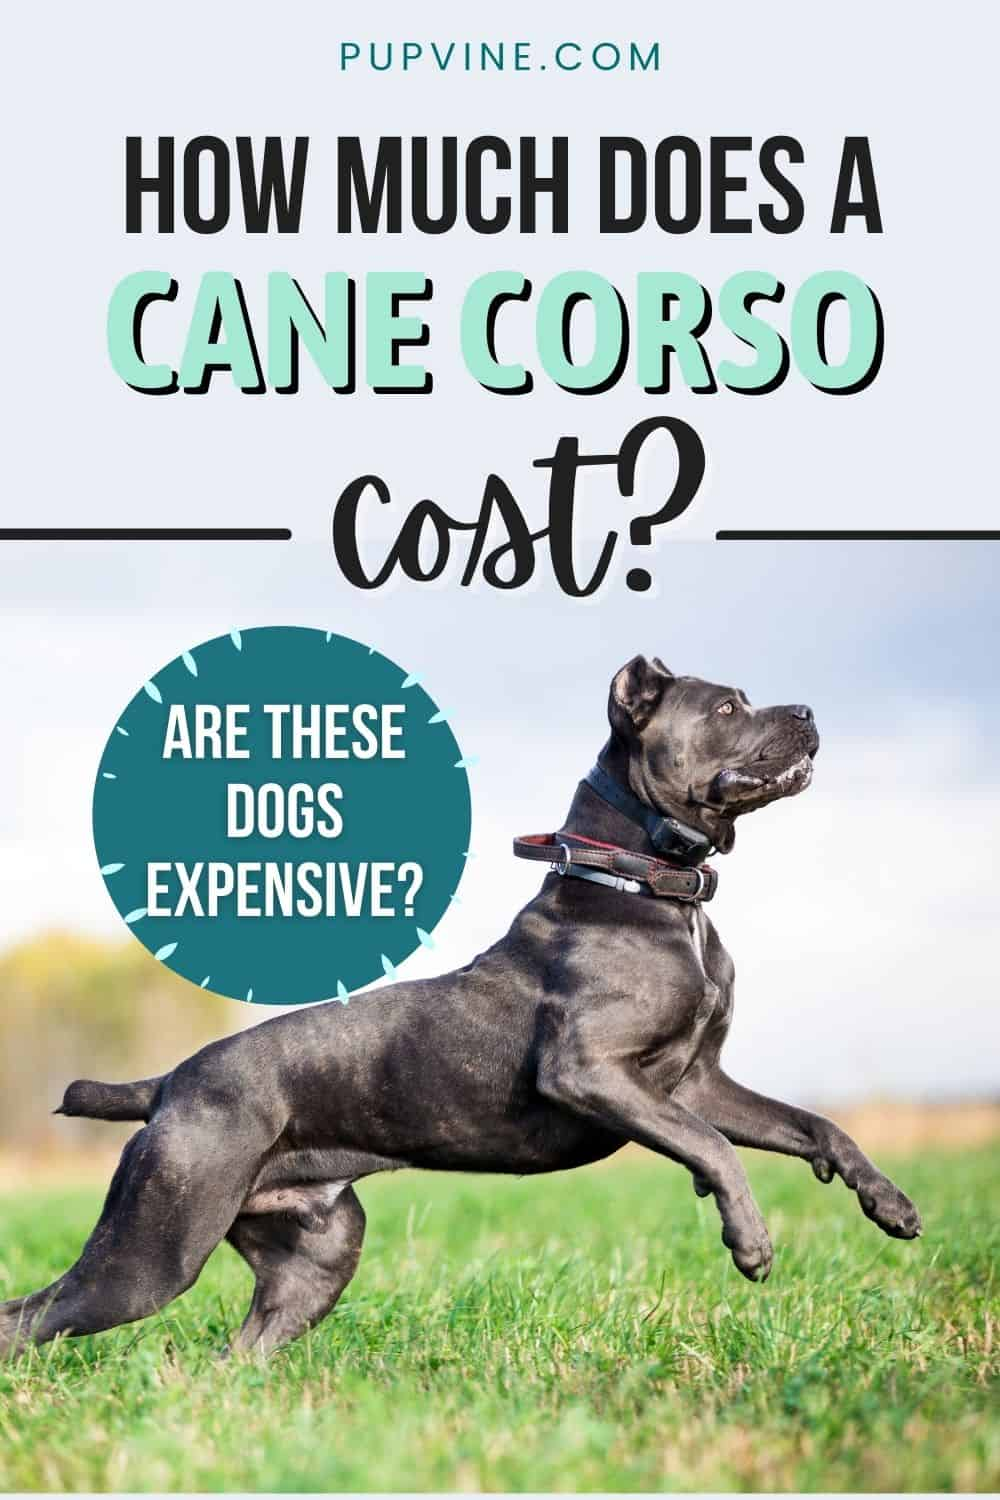 How Much Does A Cane Corso Cost? Are These Dogs Expensive?